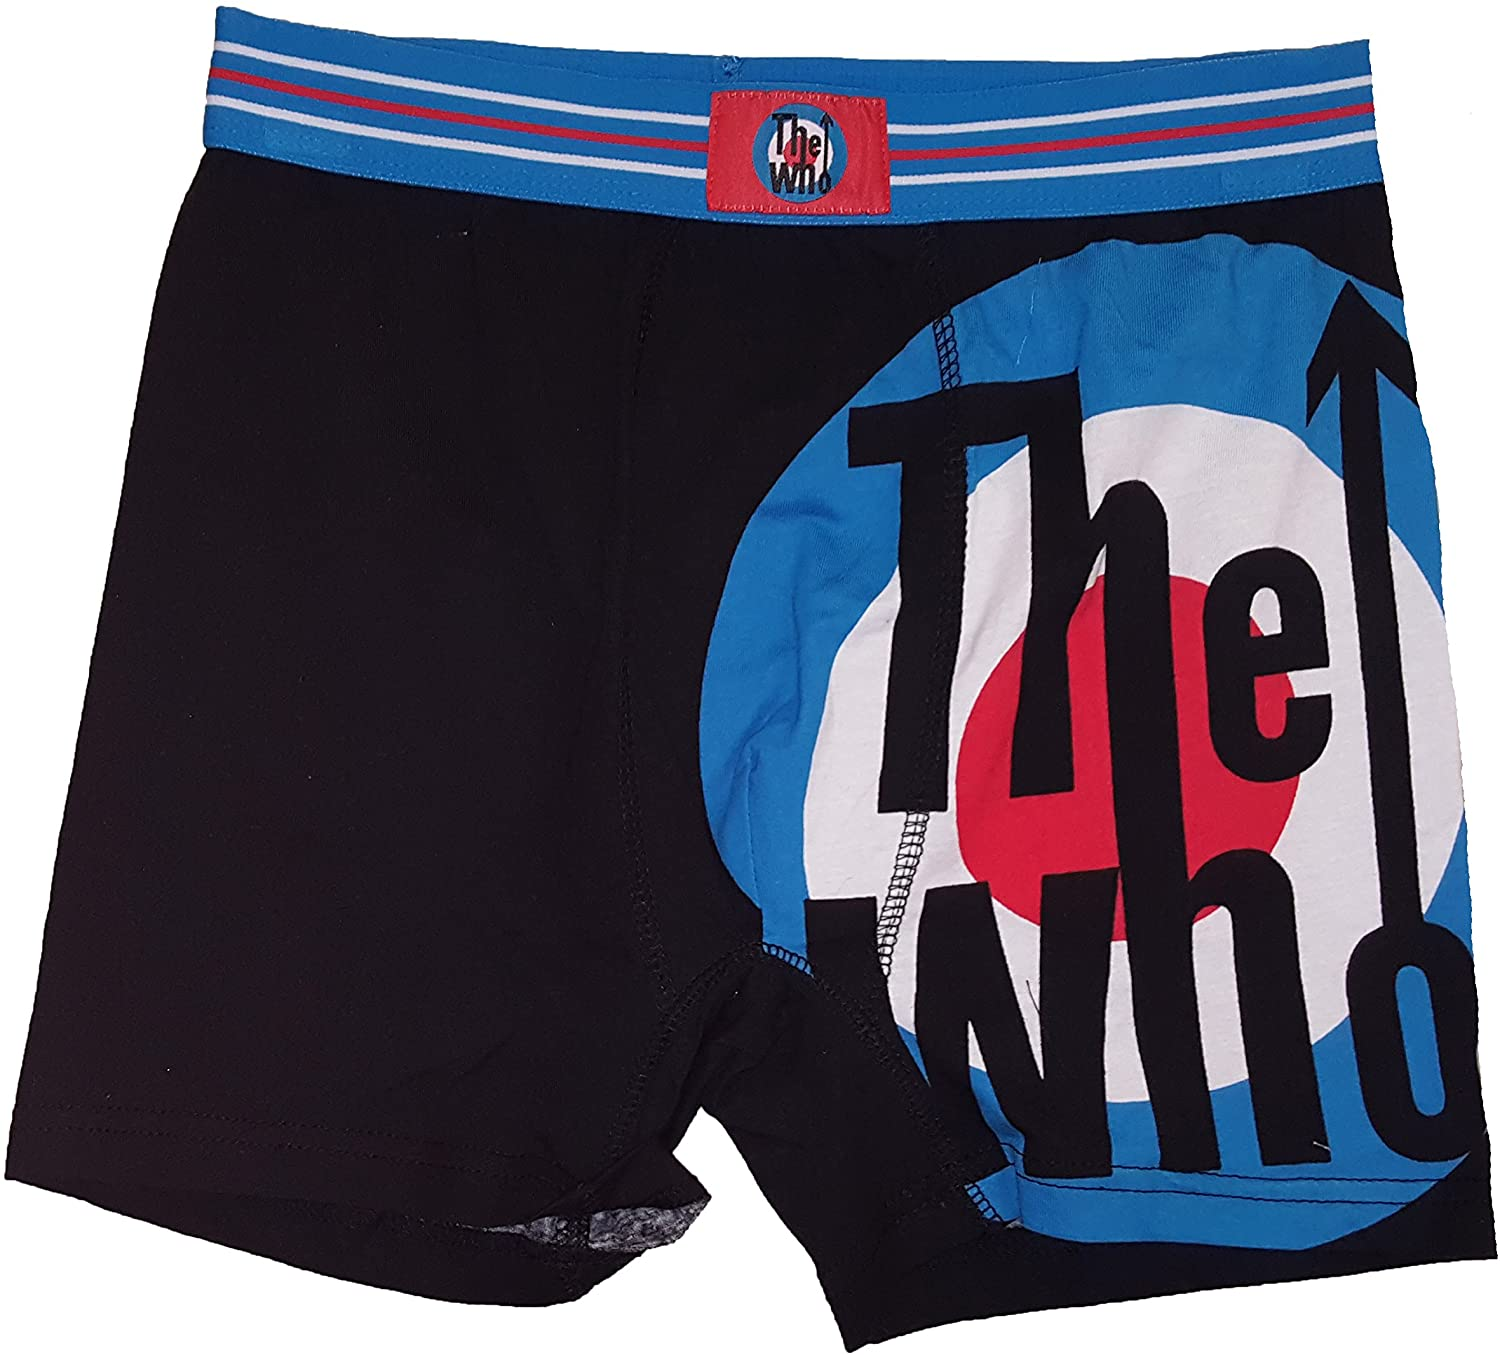 2155.The Who Boxers